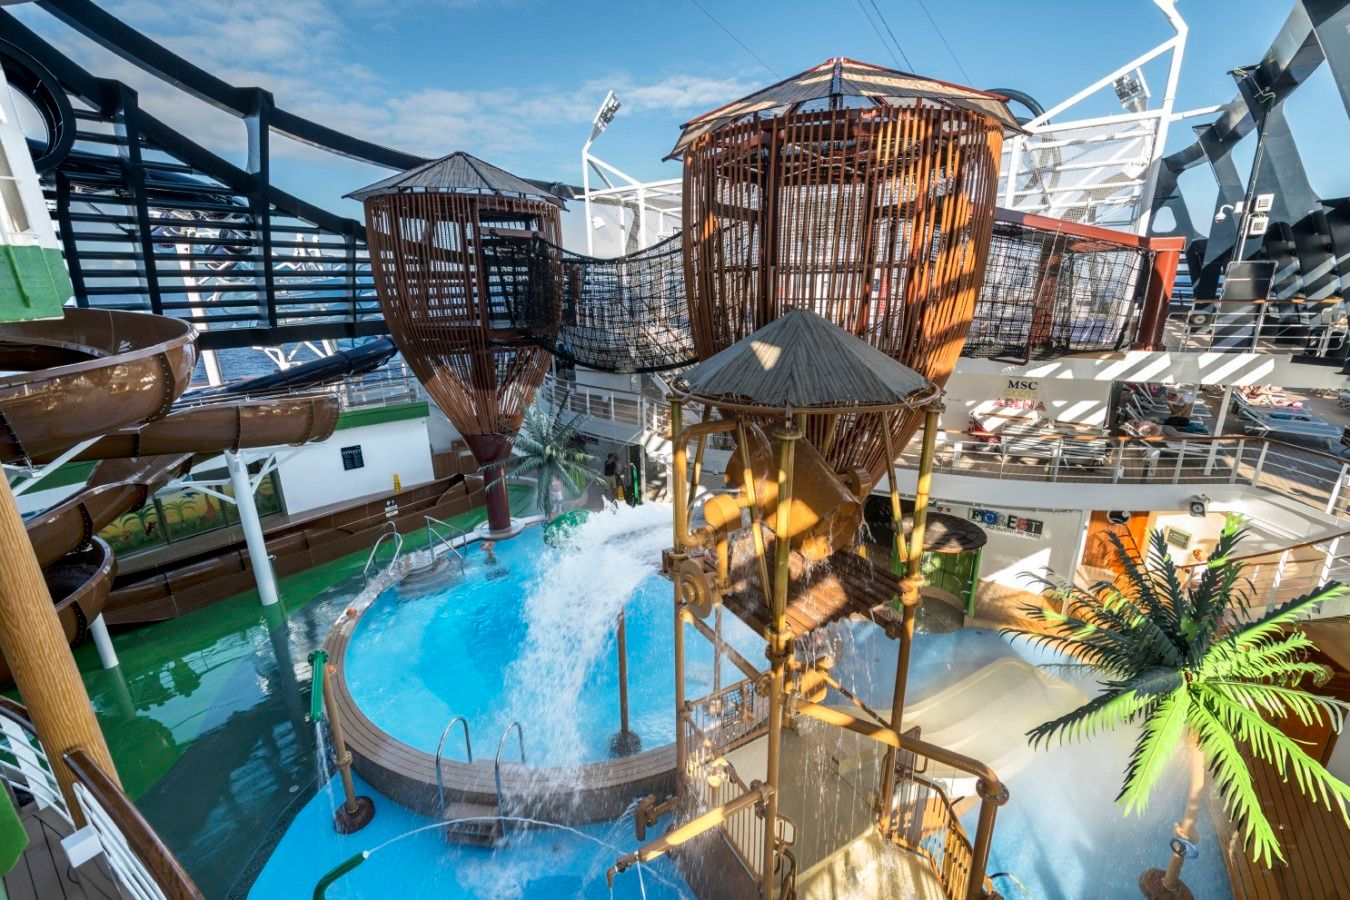 MSC Seaside Water Park